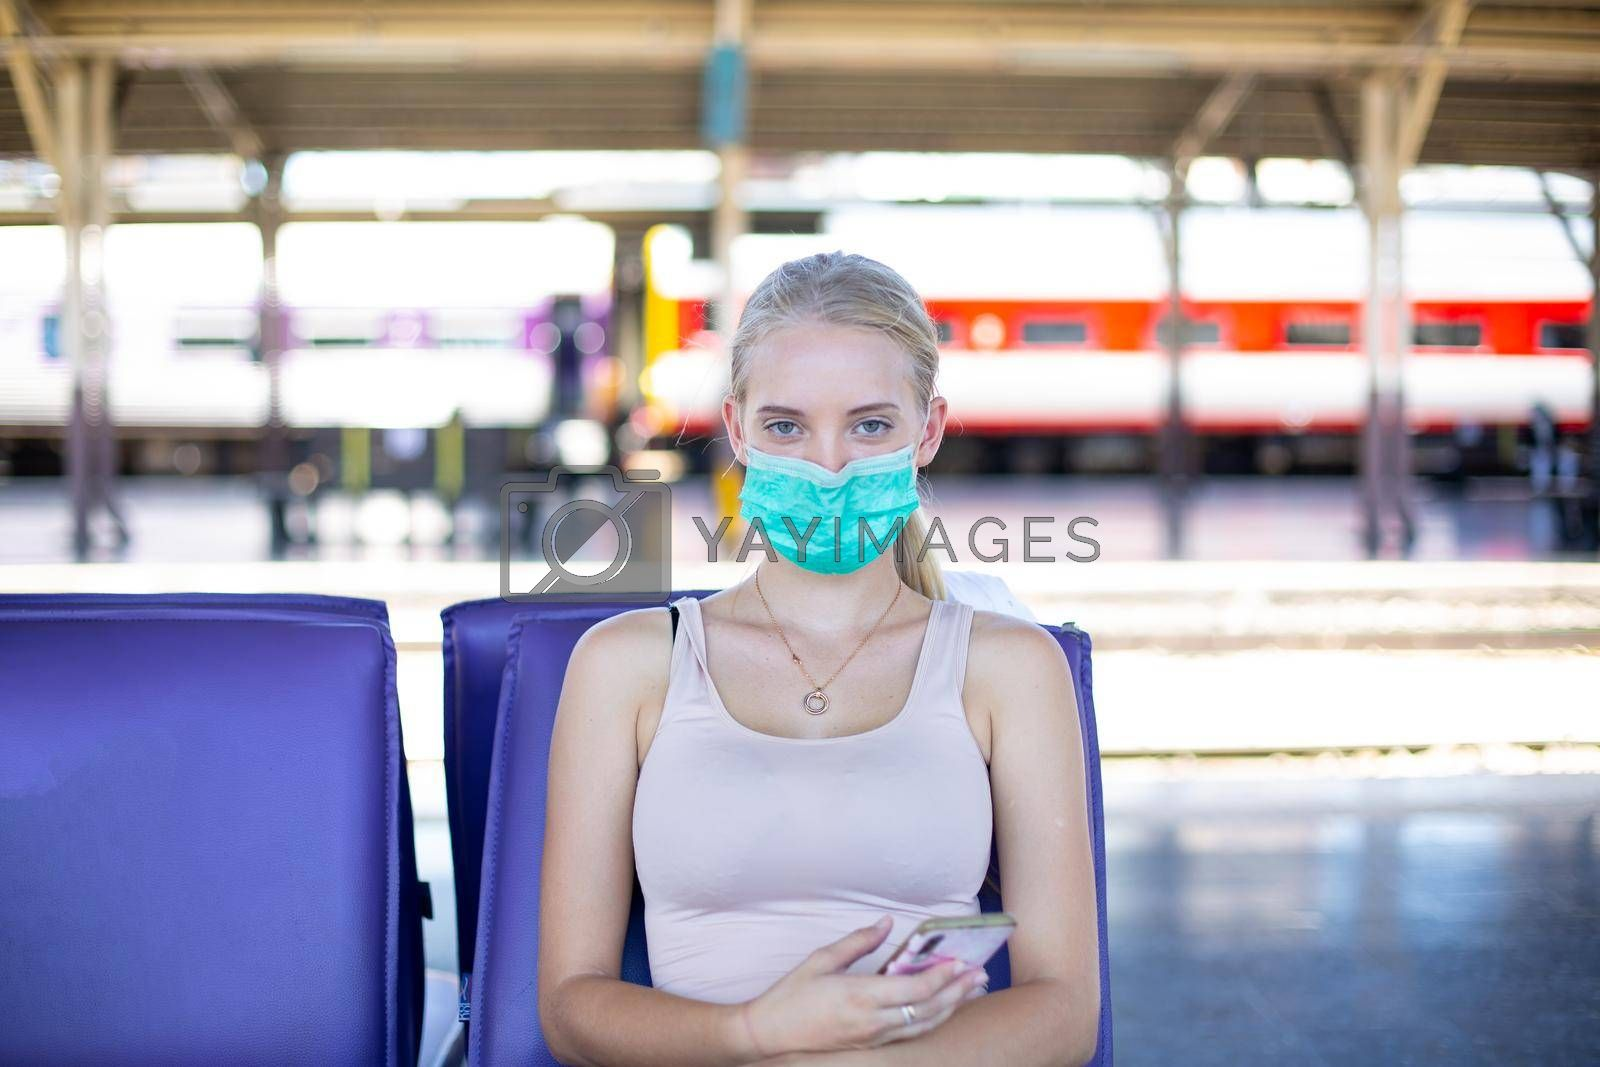 young woman with face mask waiting in vintage train, relaxed and carefree at the station platform in Bangkok, Thailand before catching a train. Travel photography. Lifestyle.